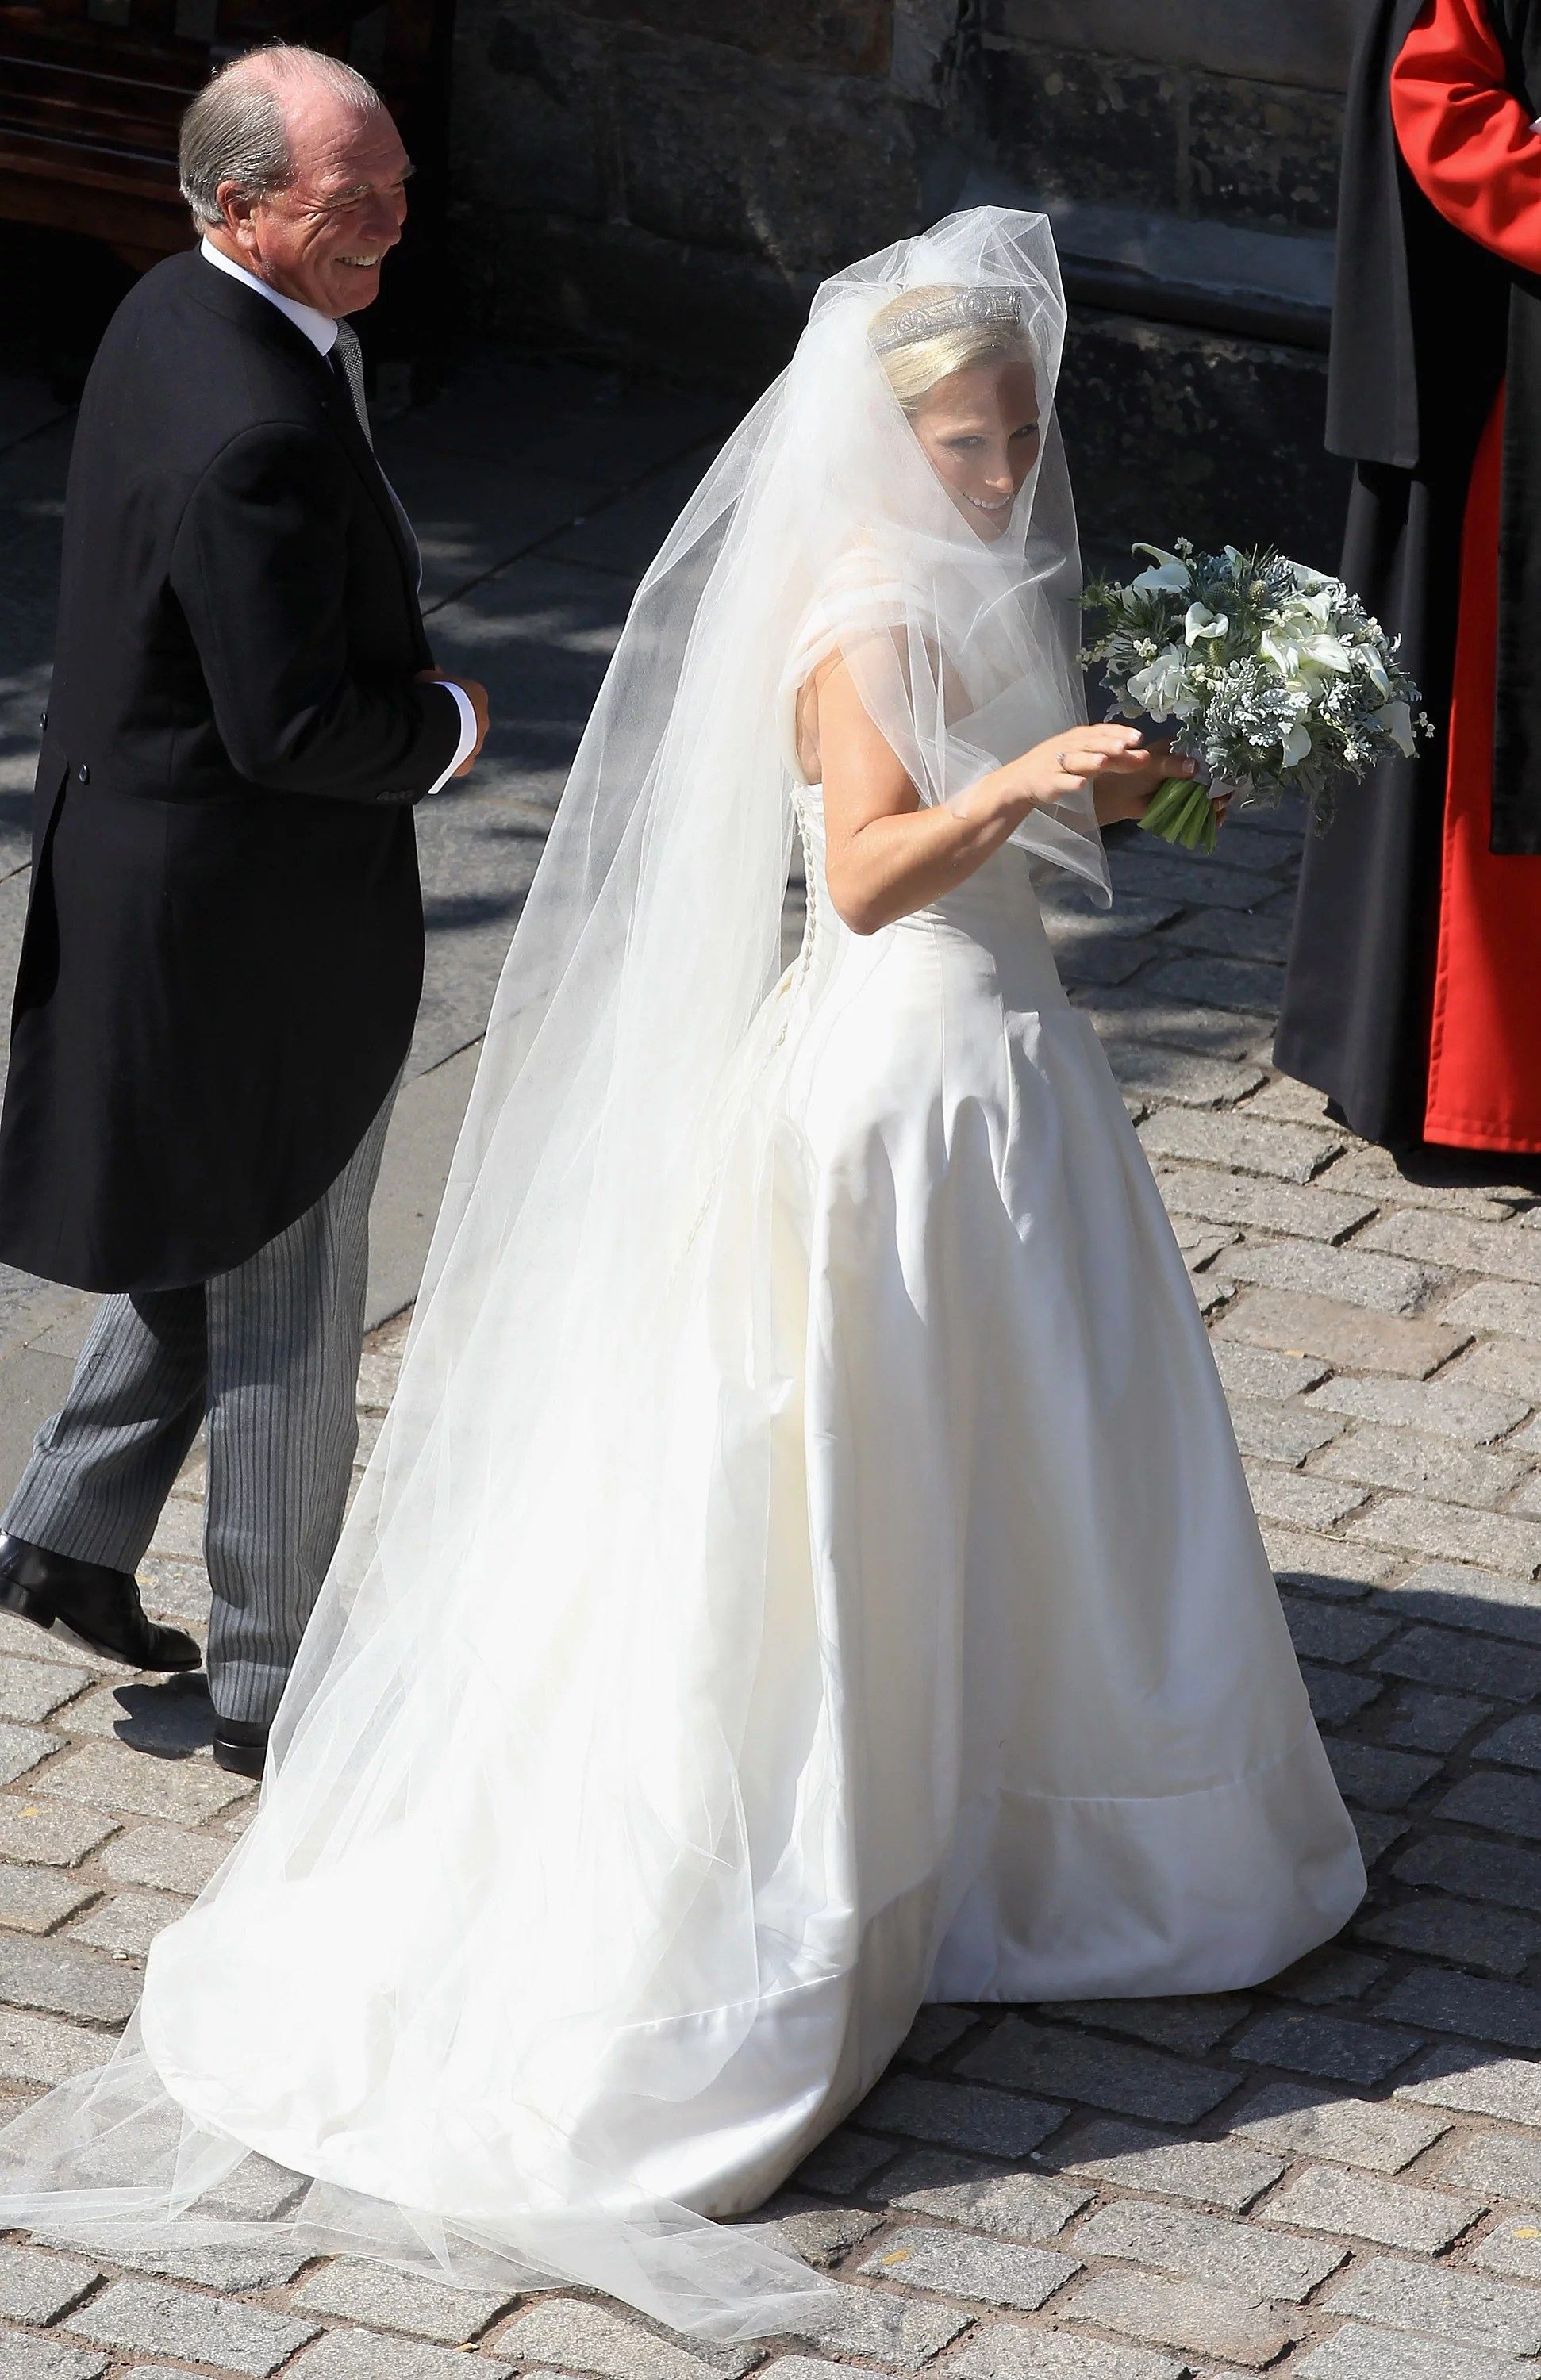 Pictures Of Zara Phillips In Her Wedding Dress Arriving To